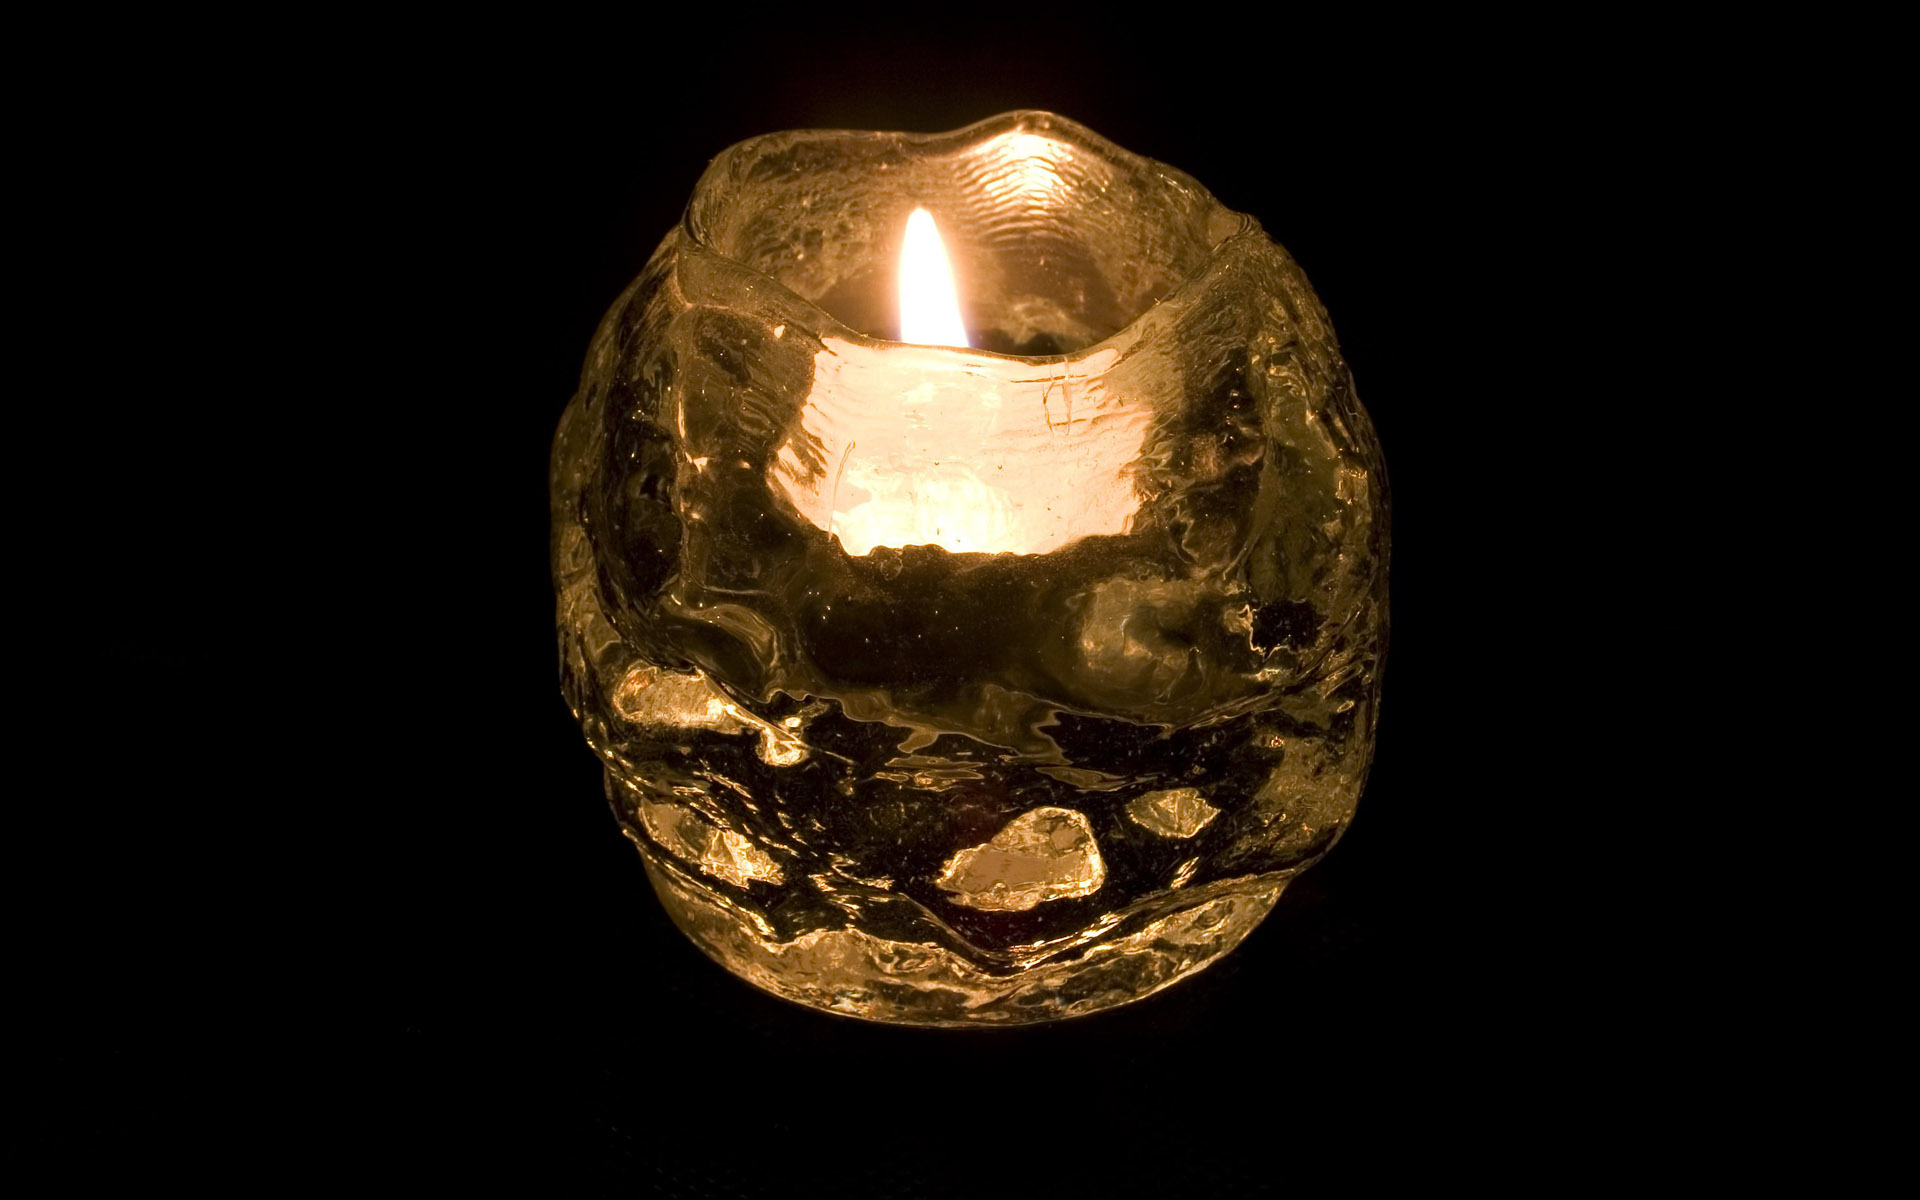 Candle wallpaper 4299